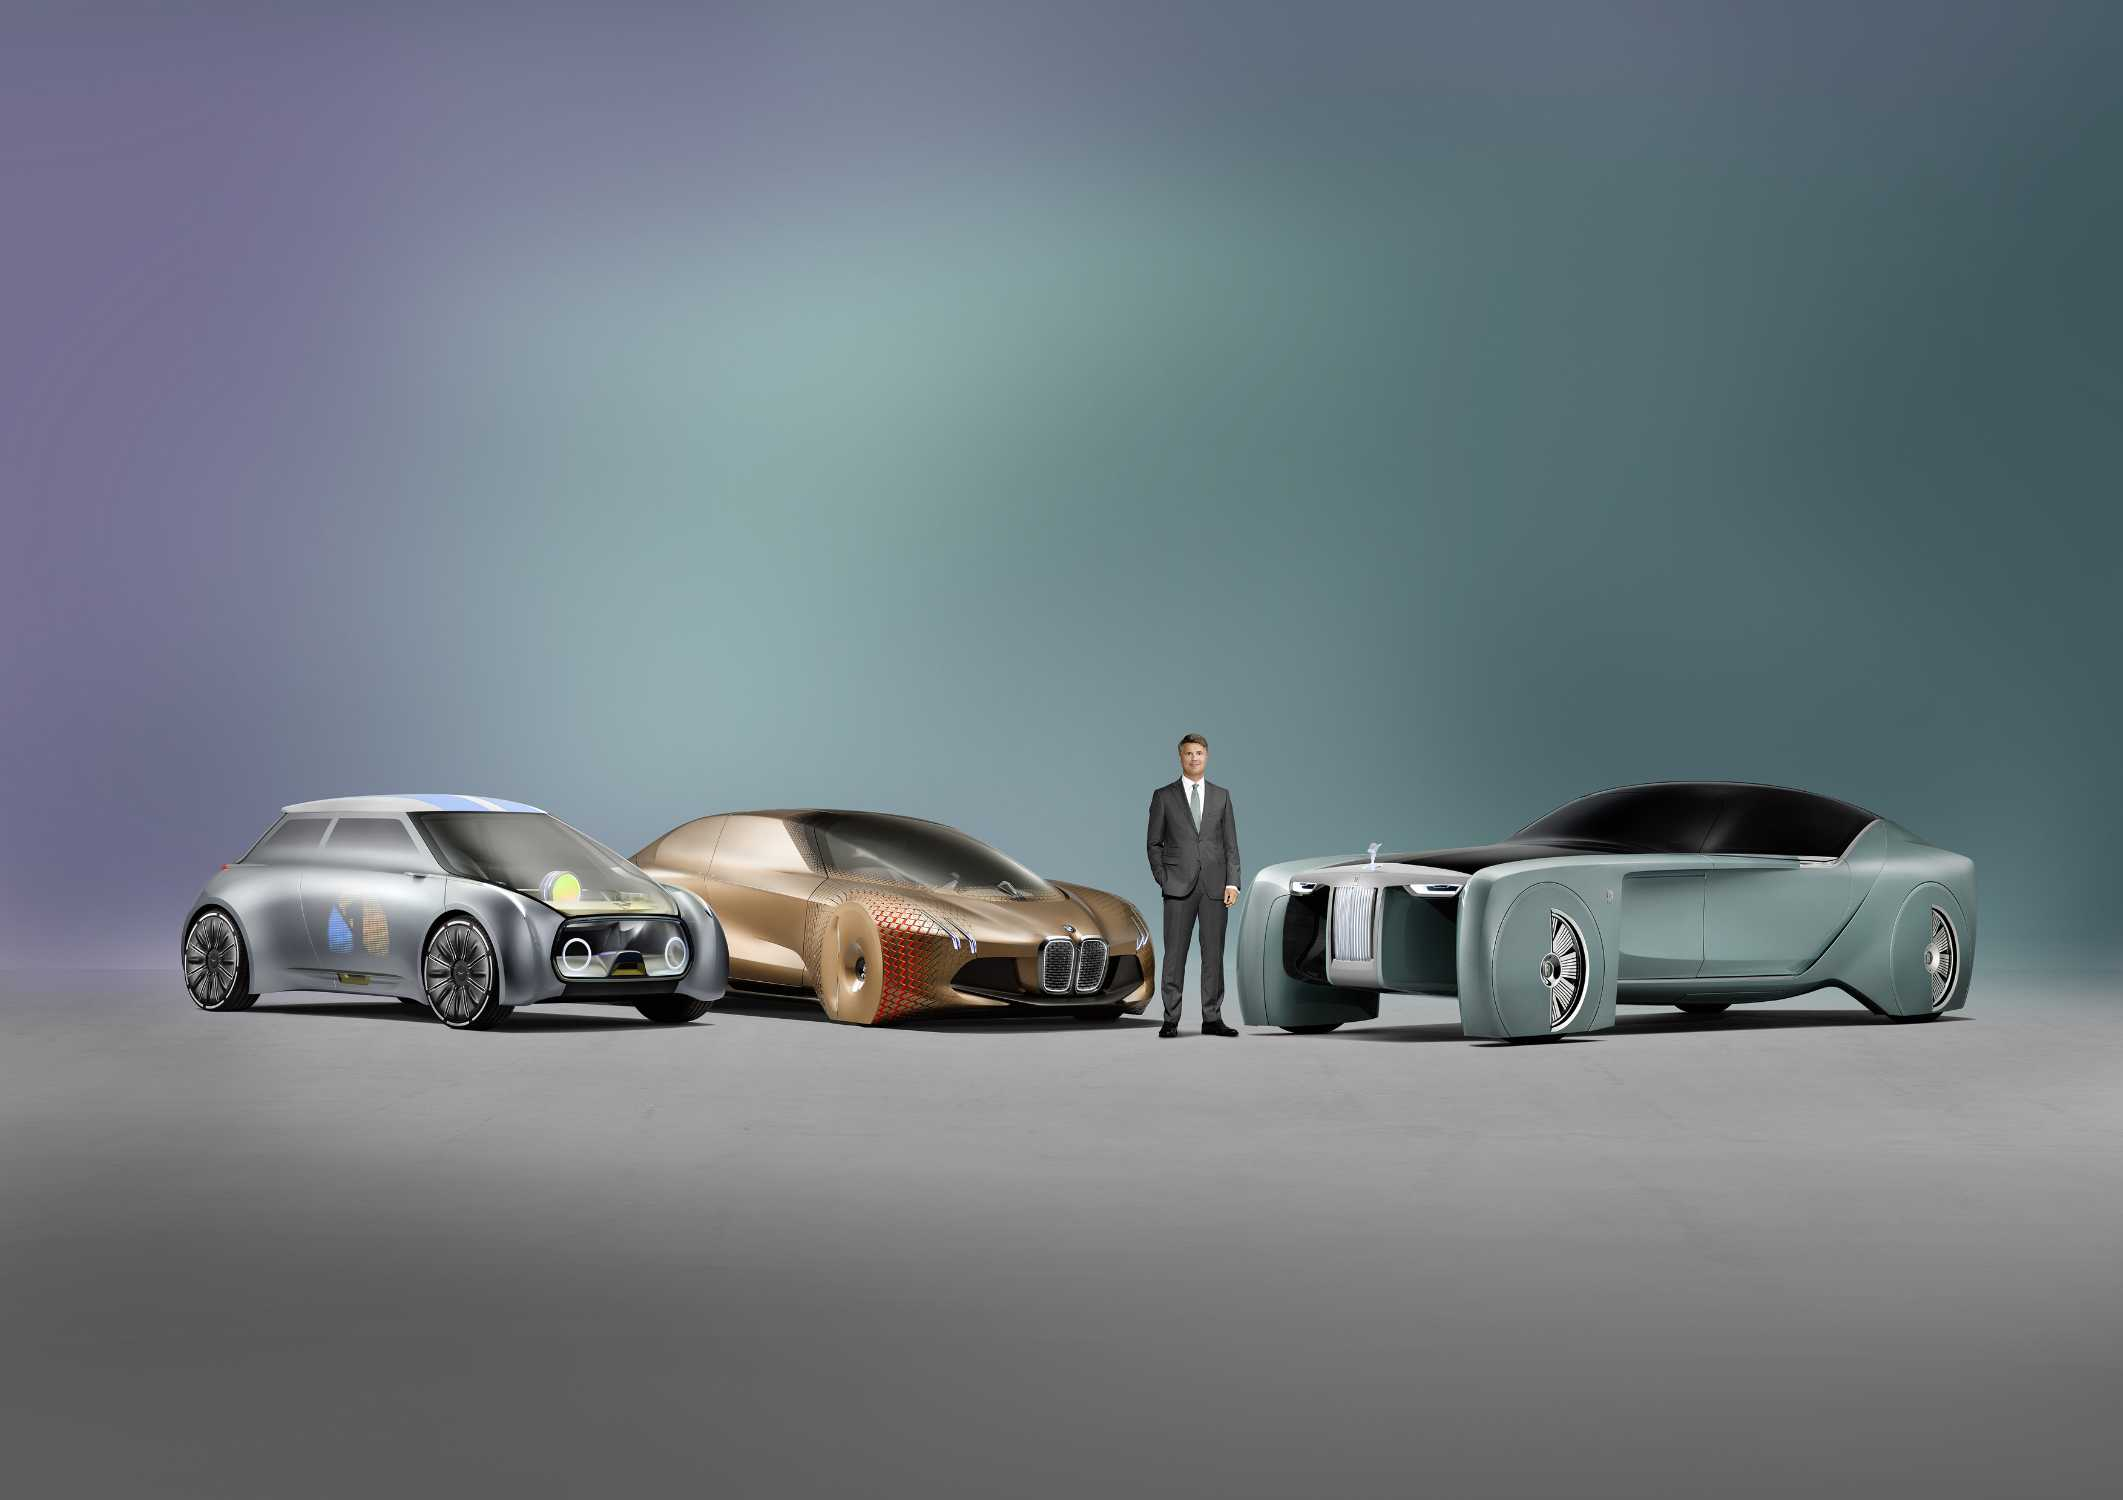 The Next 100 Years >> Bmw Group The Next 100 Years Iconic Impulses The Bmw Group Future